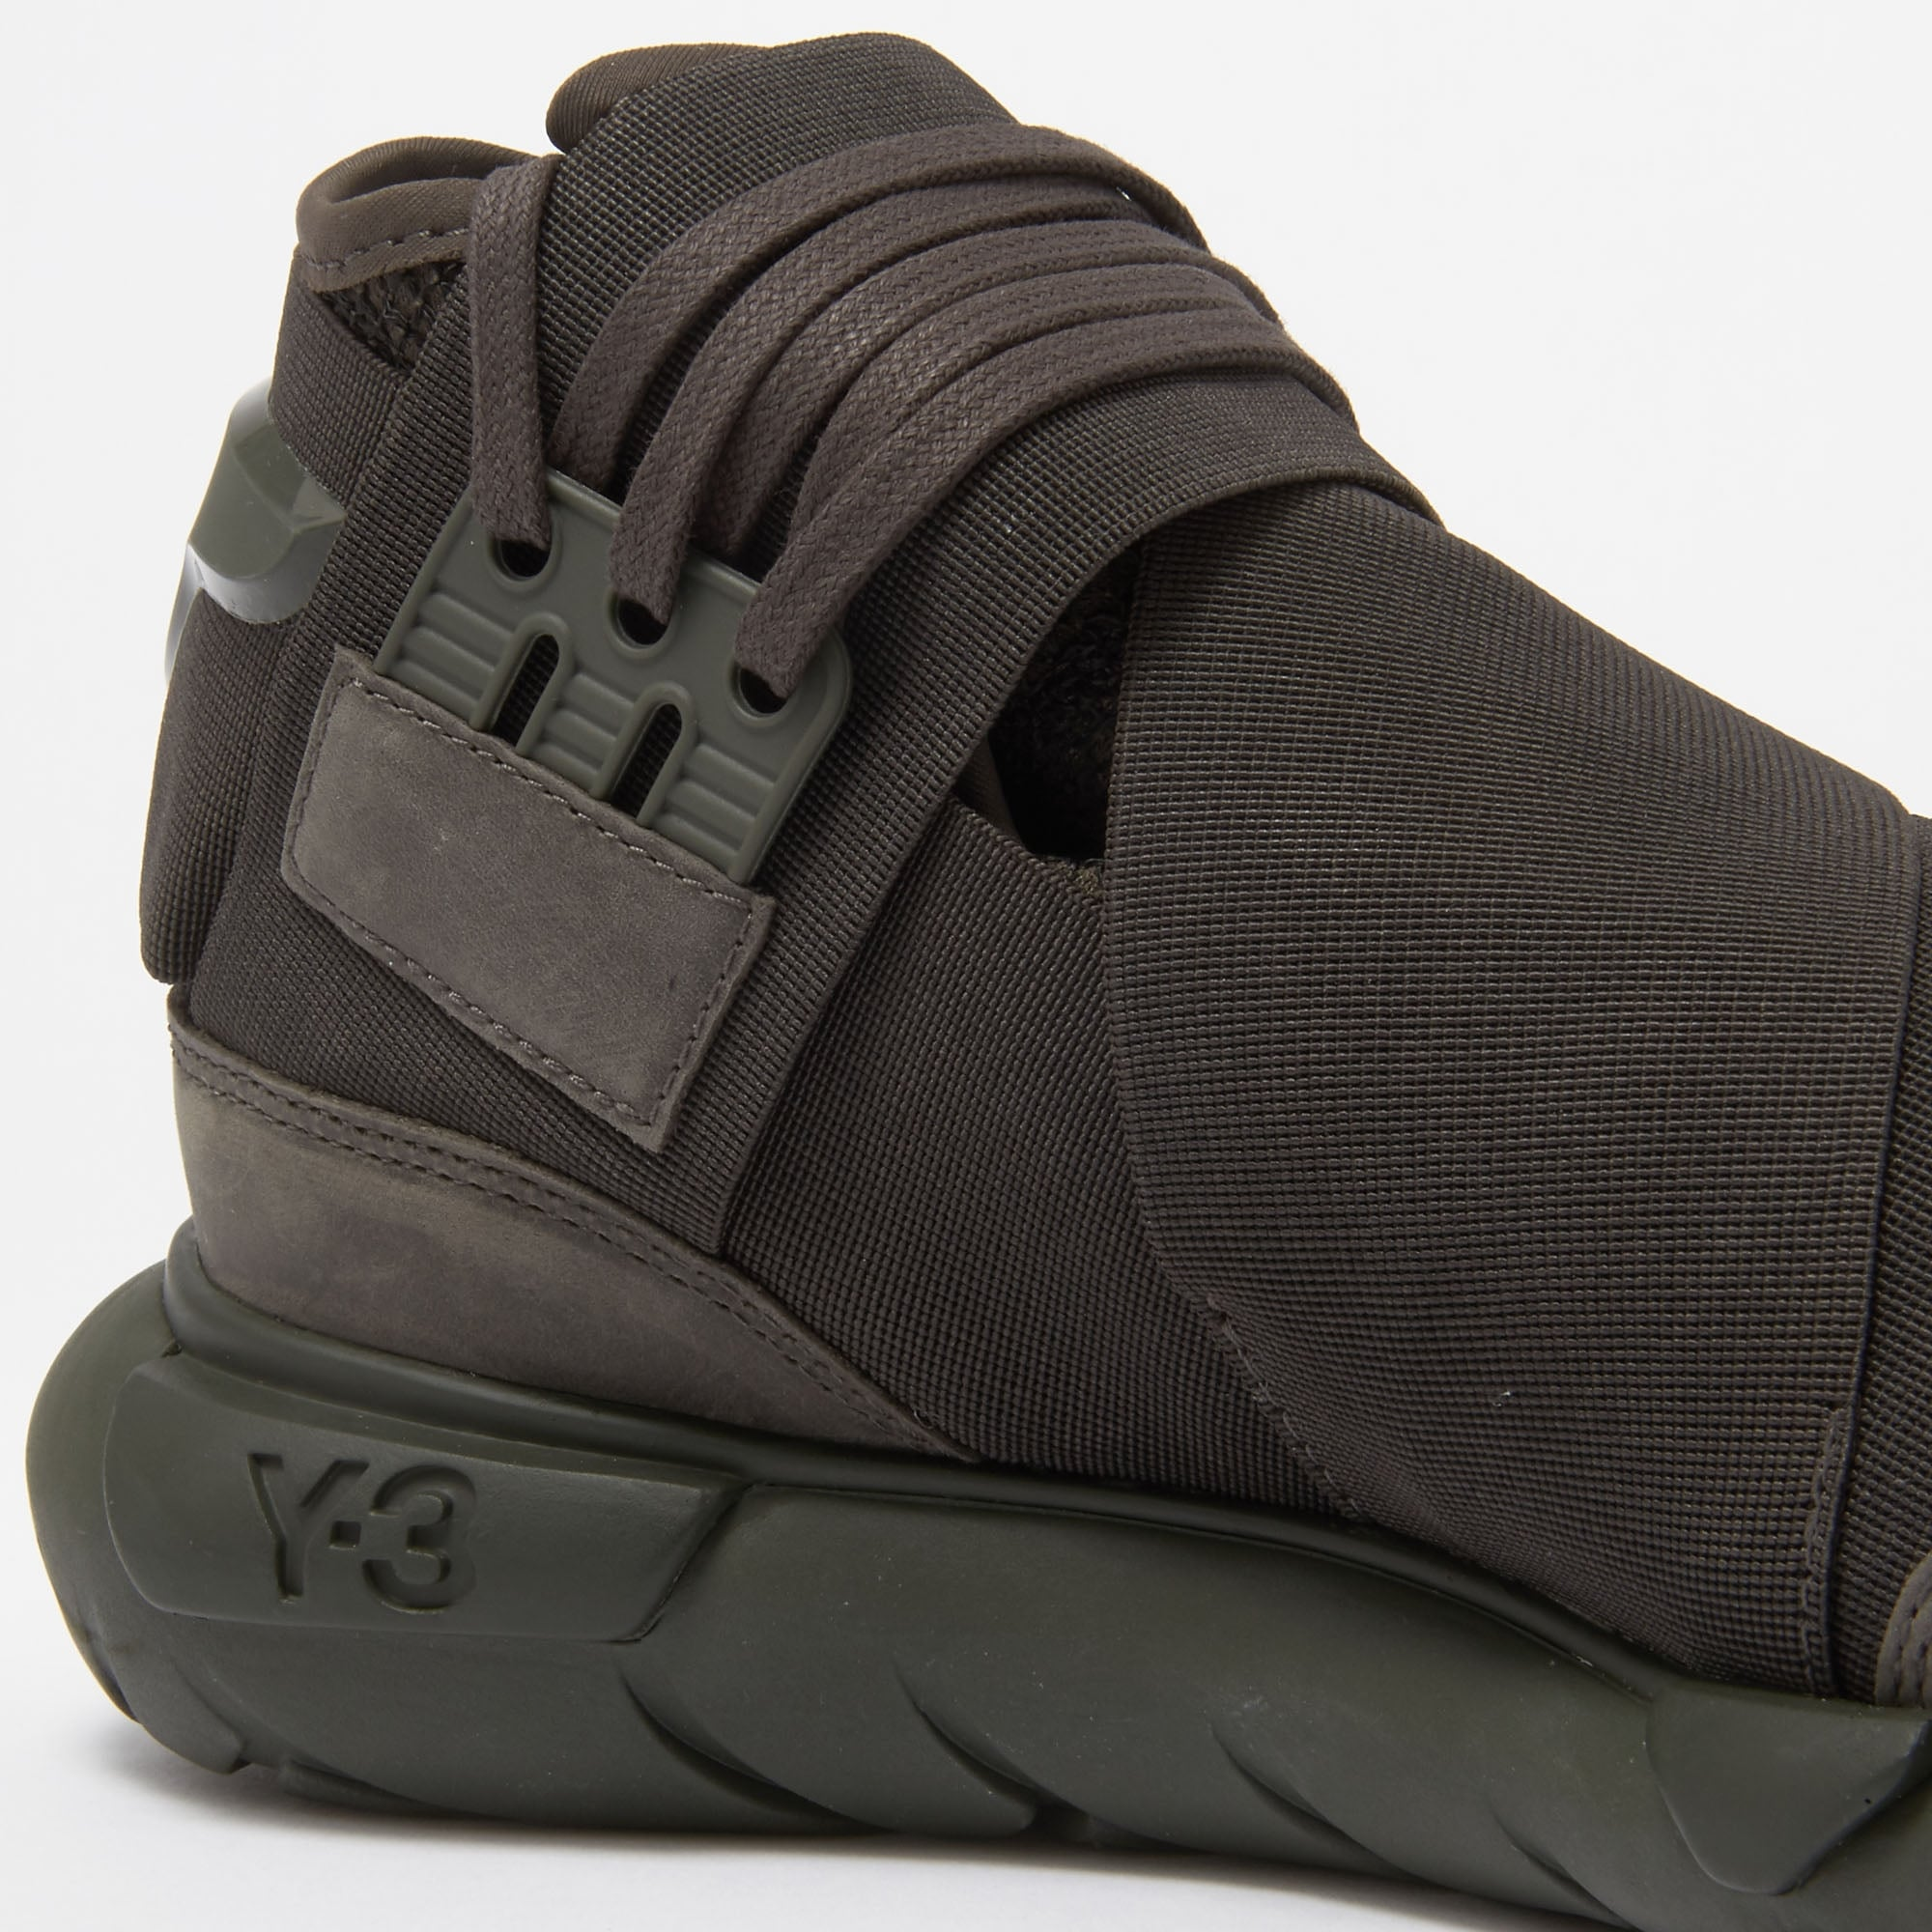 b414cb984 Adidas Y-3 Qasa High Black Olive Sneakers CG3194